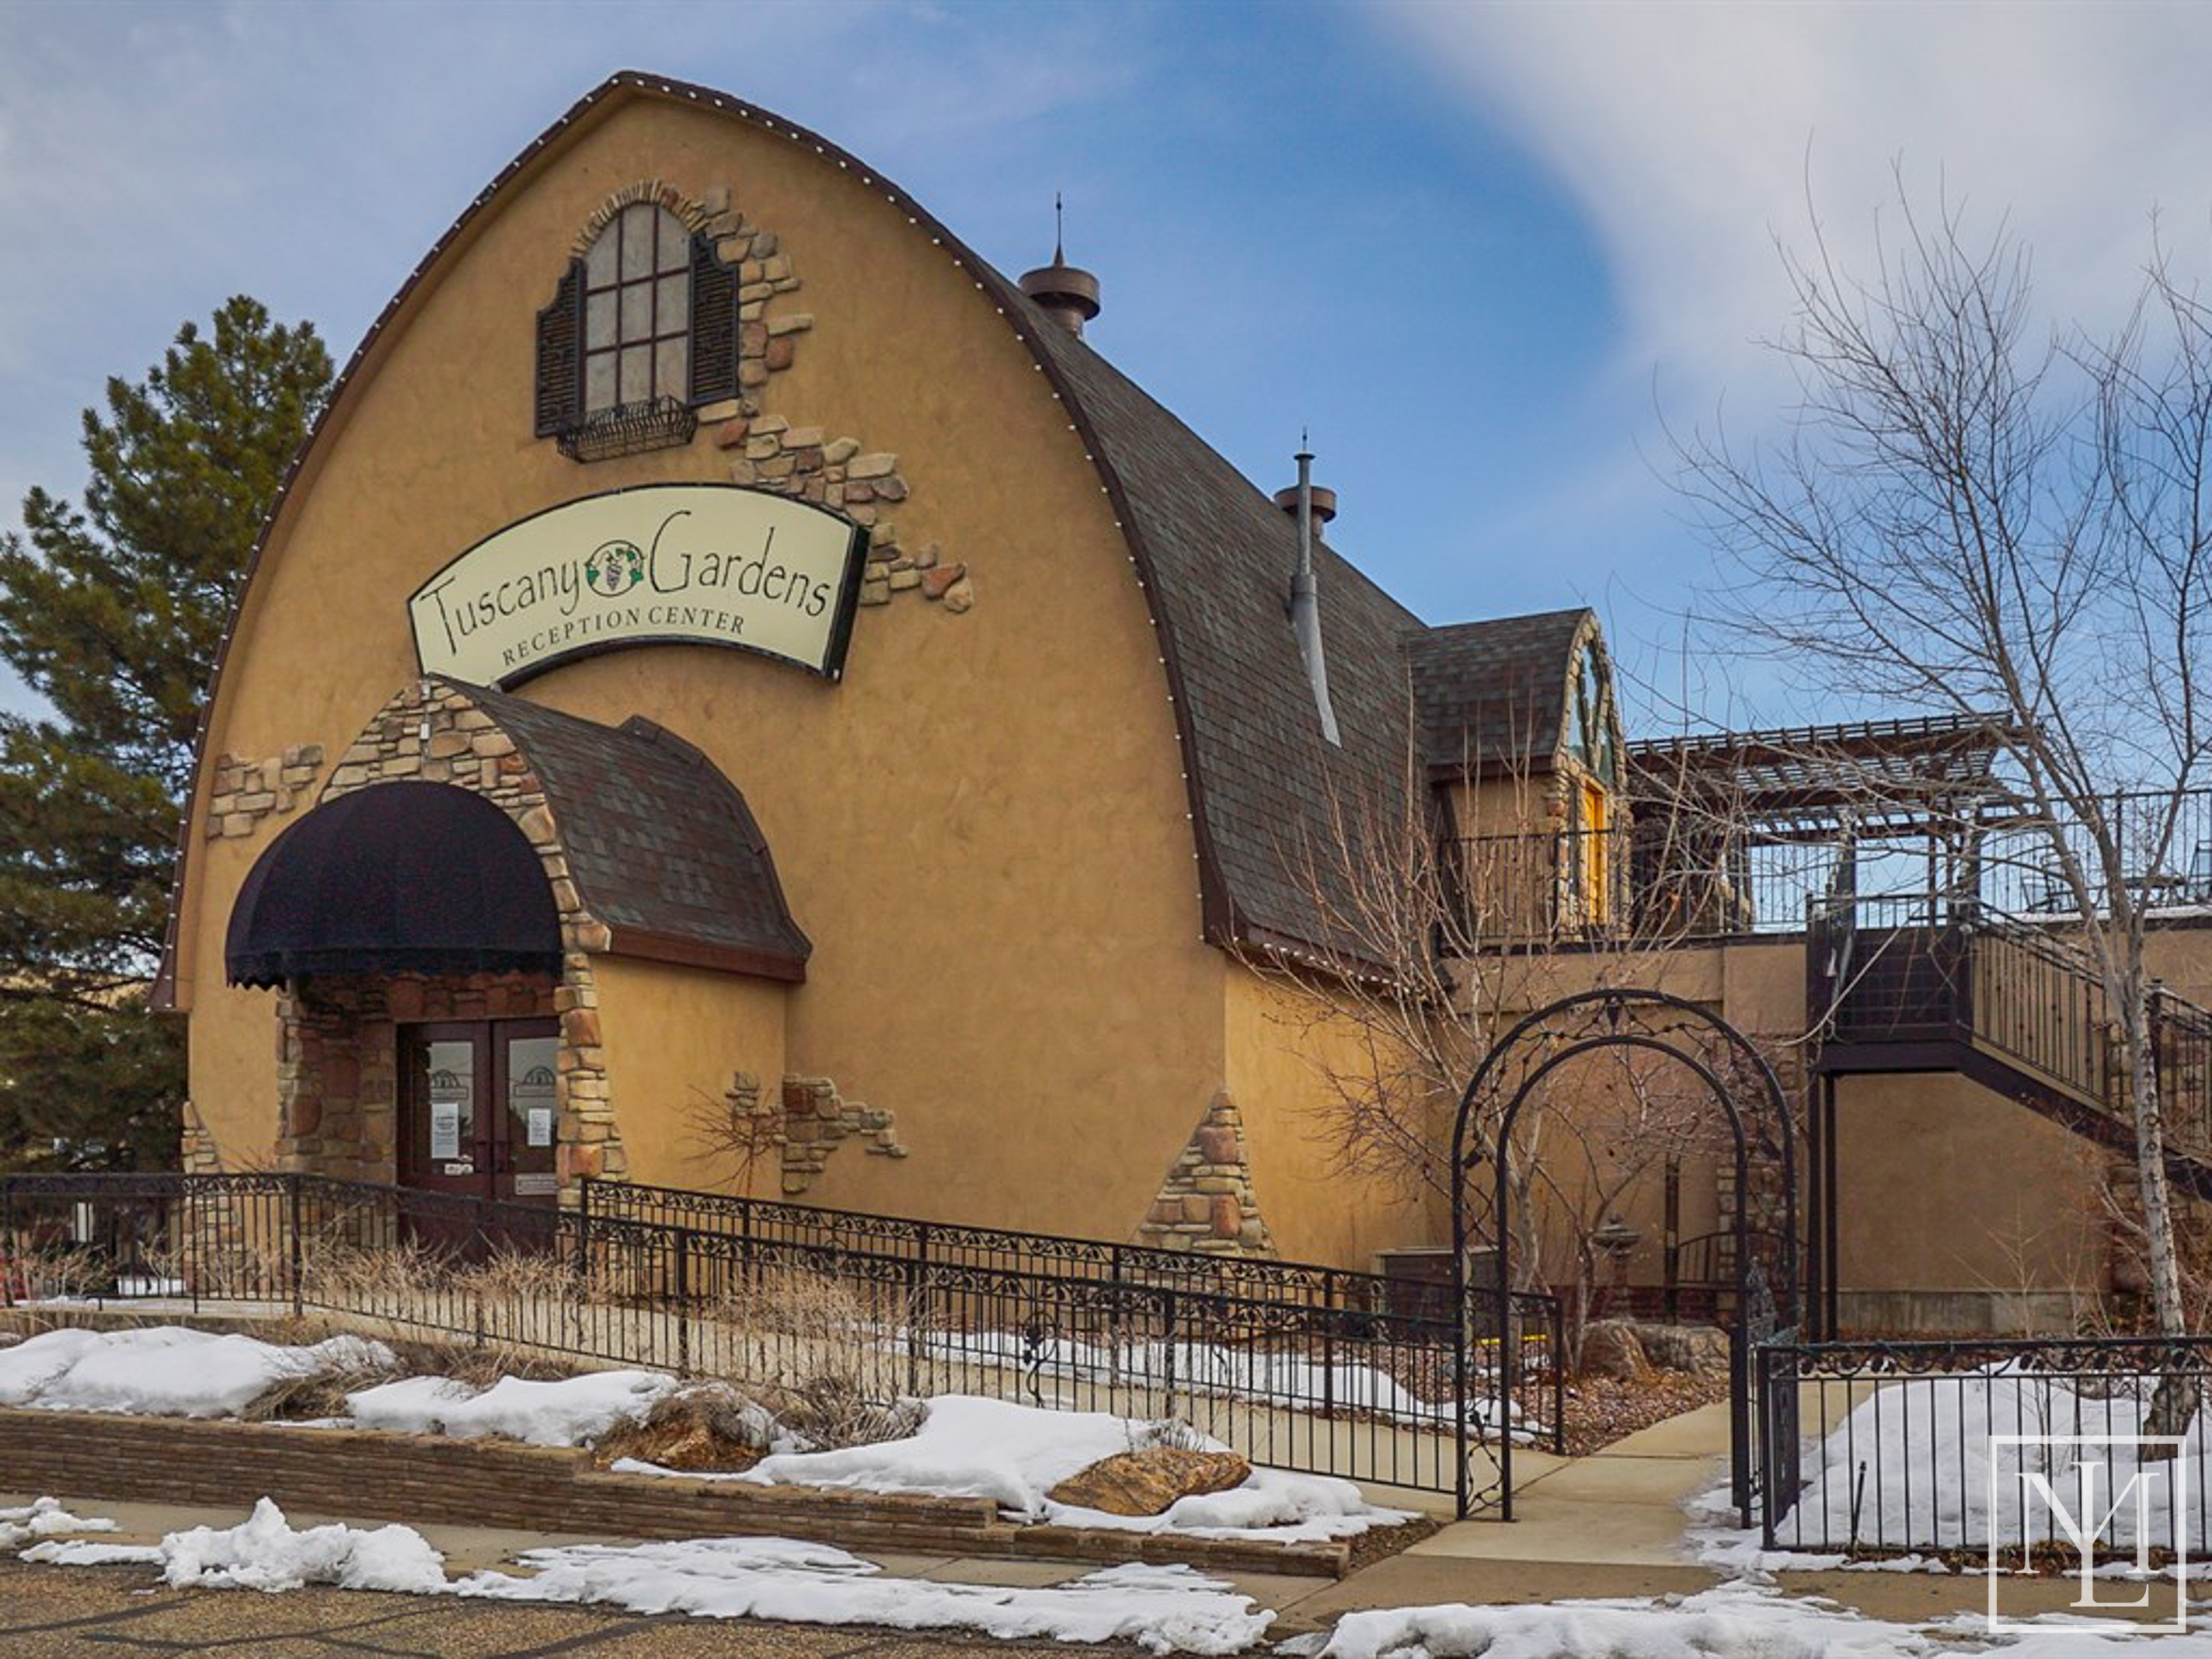 Tuscany Gardens Historic Gothic Barn For Sale